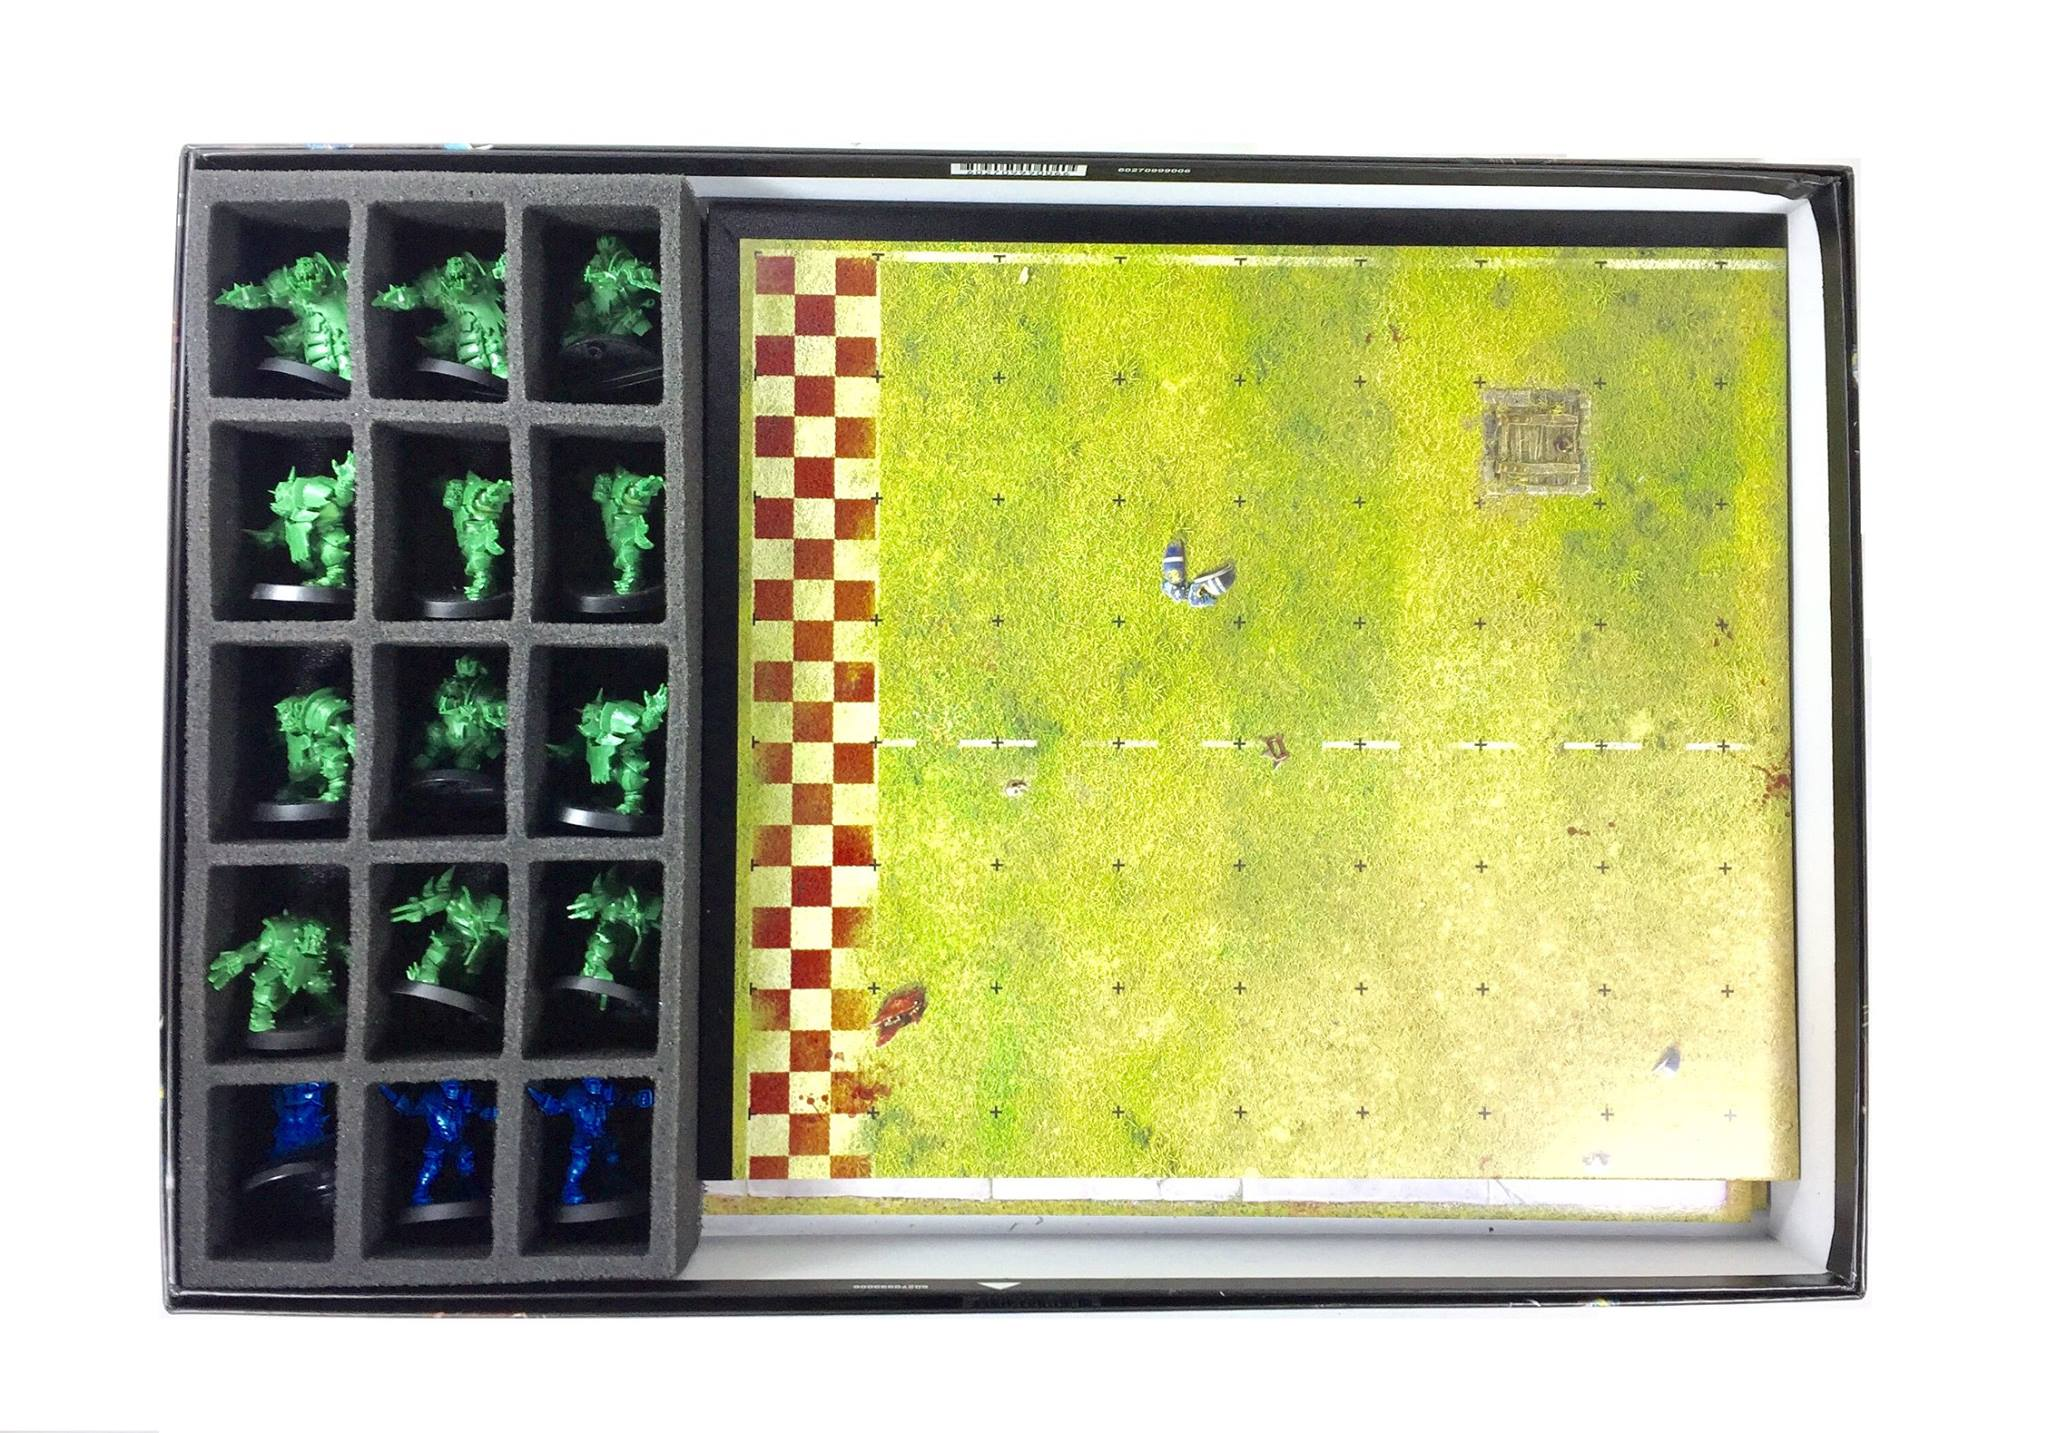 Snap Up New Battle Foam Blood Bowl Kits To Keep Teams Safe Ontabletop Home Of Beasts Of War These 2020 fantasy football rankings are refreshed live every day based on average draft position data generated by the fantasy football mock drafts. beasts of war